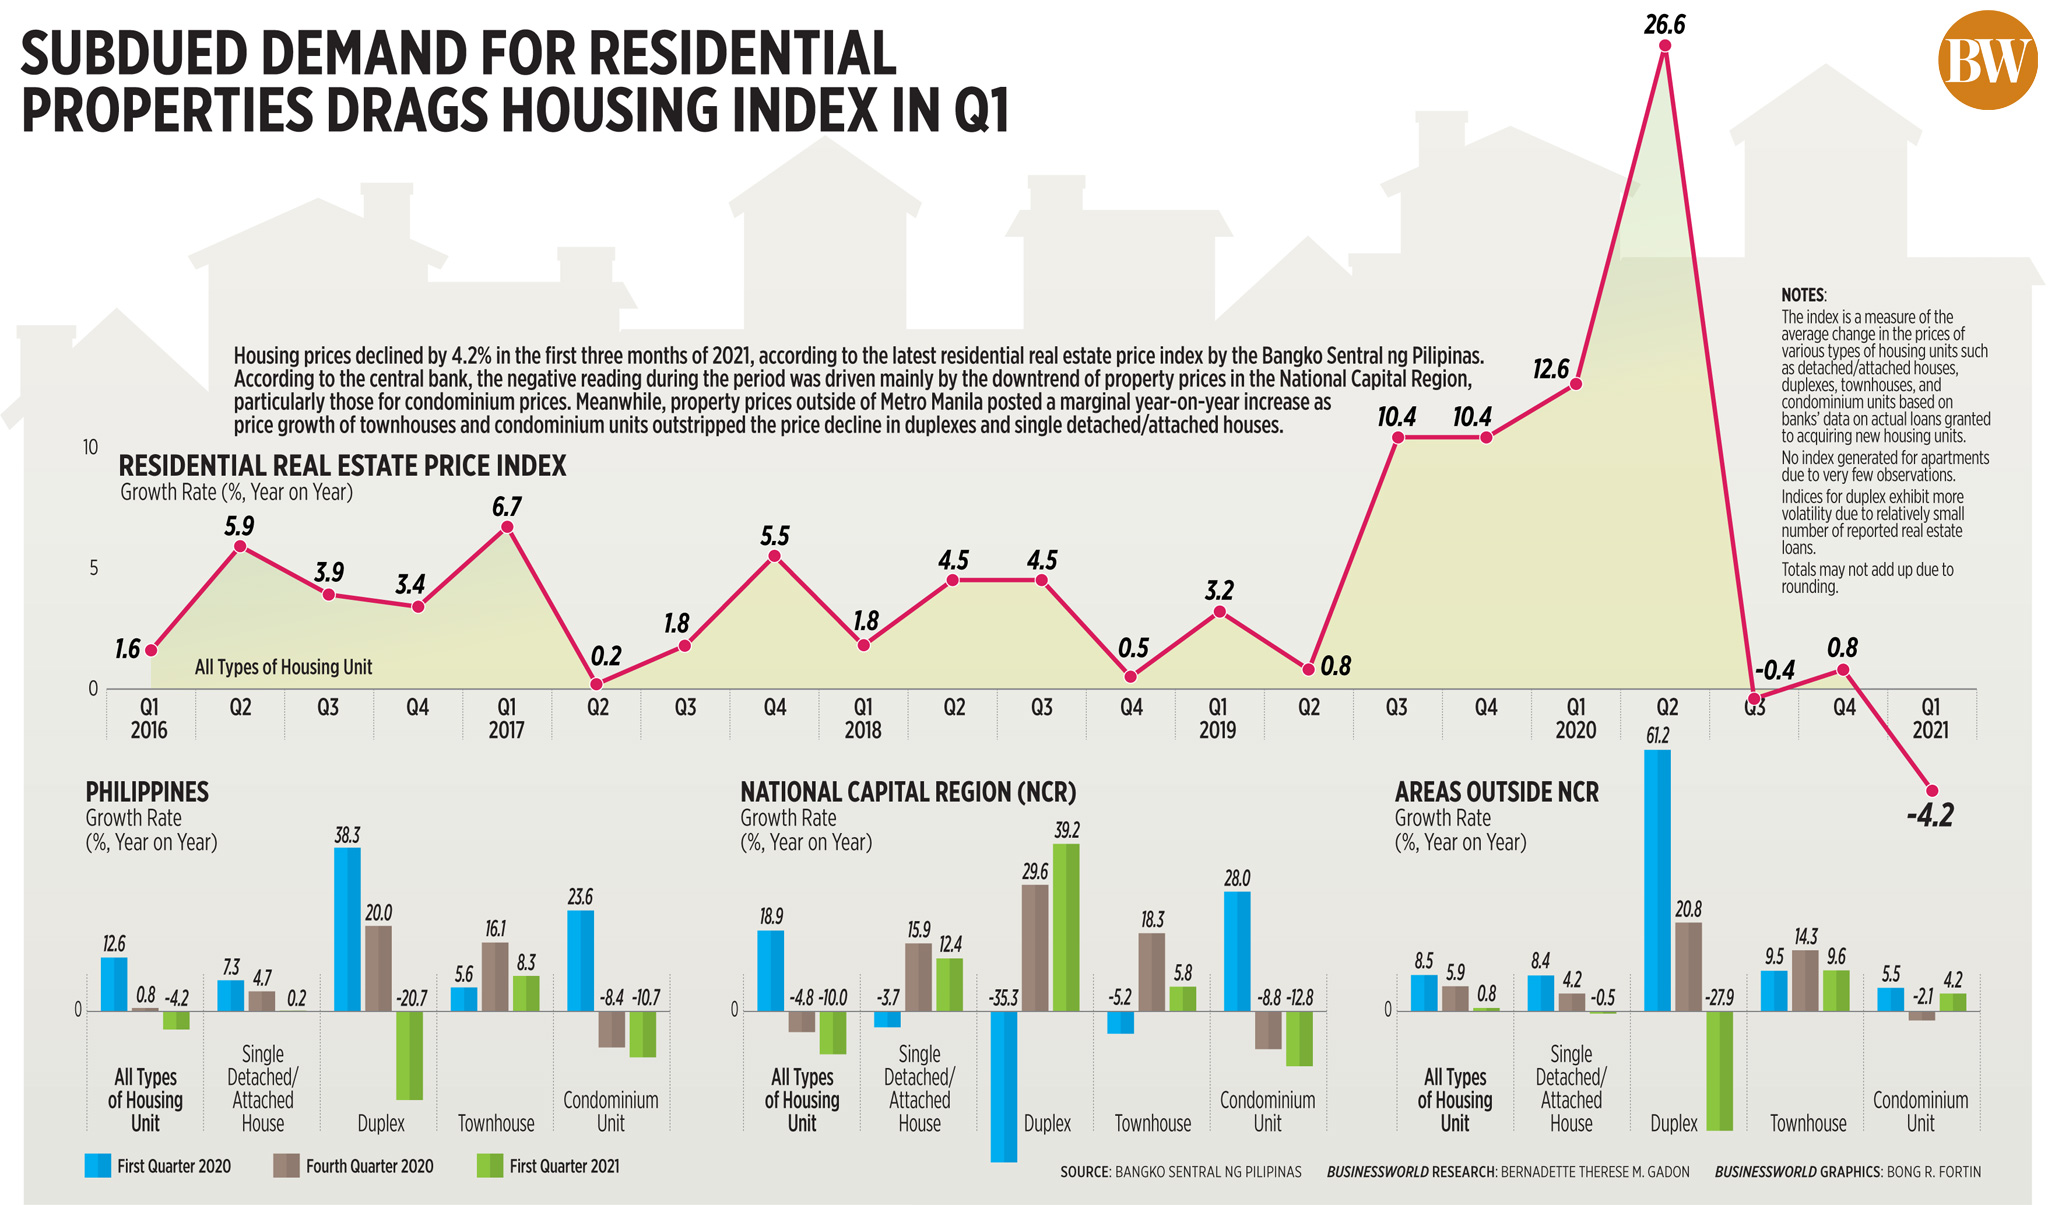 Subdued demand for residential properties drags housing index in Q1 (2021)